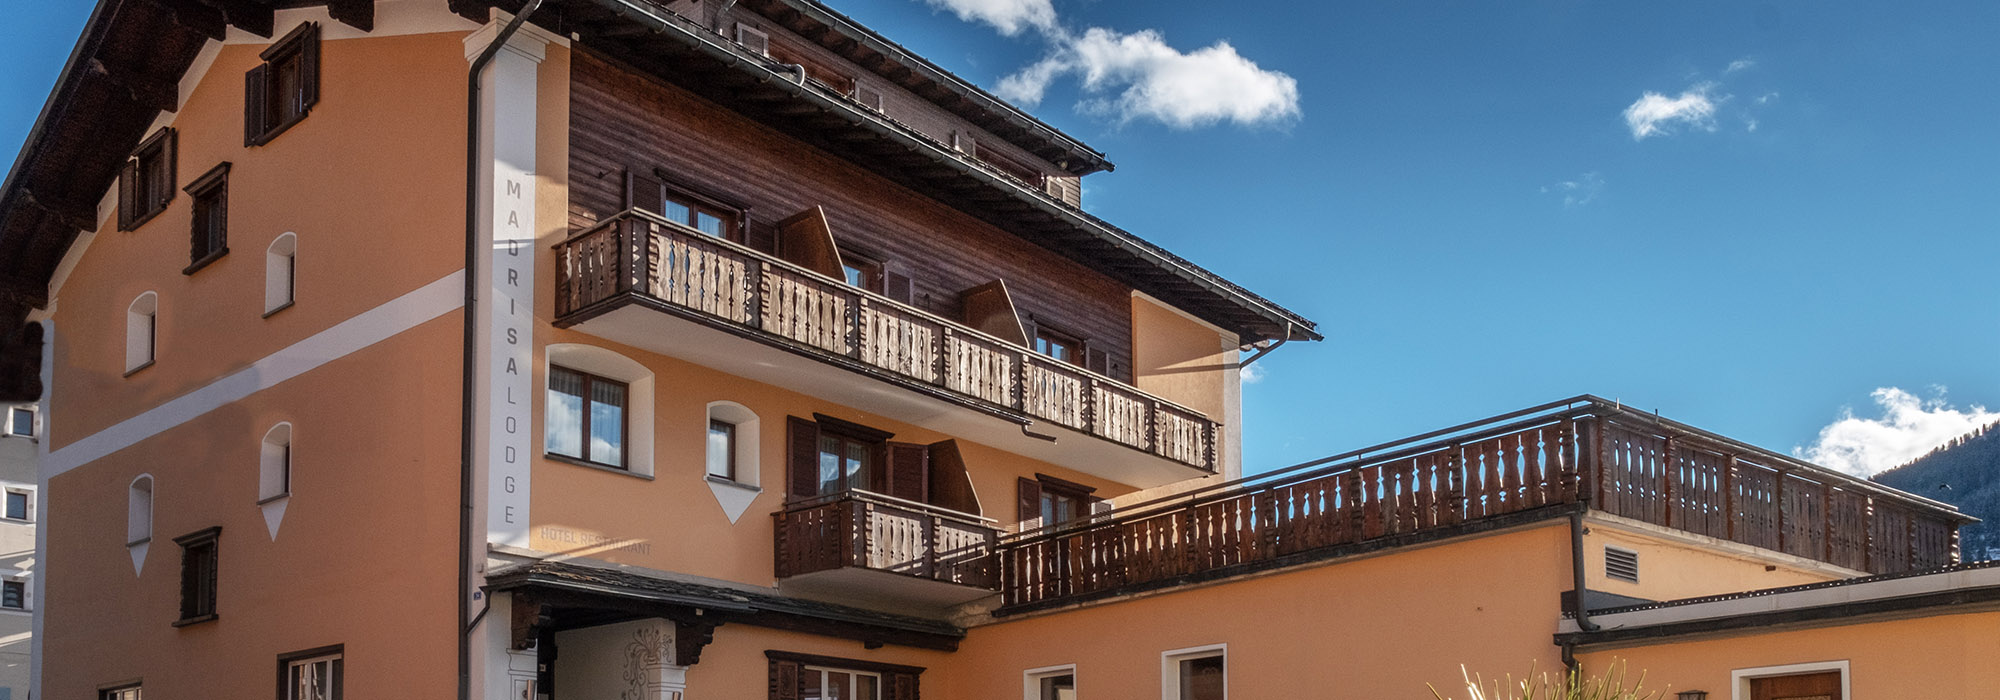 The family hotel in Klosters